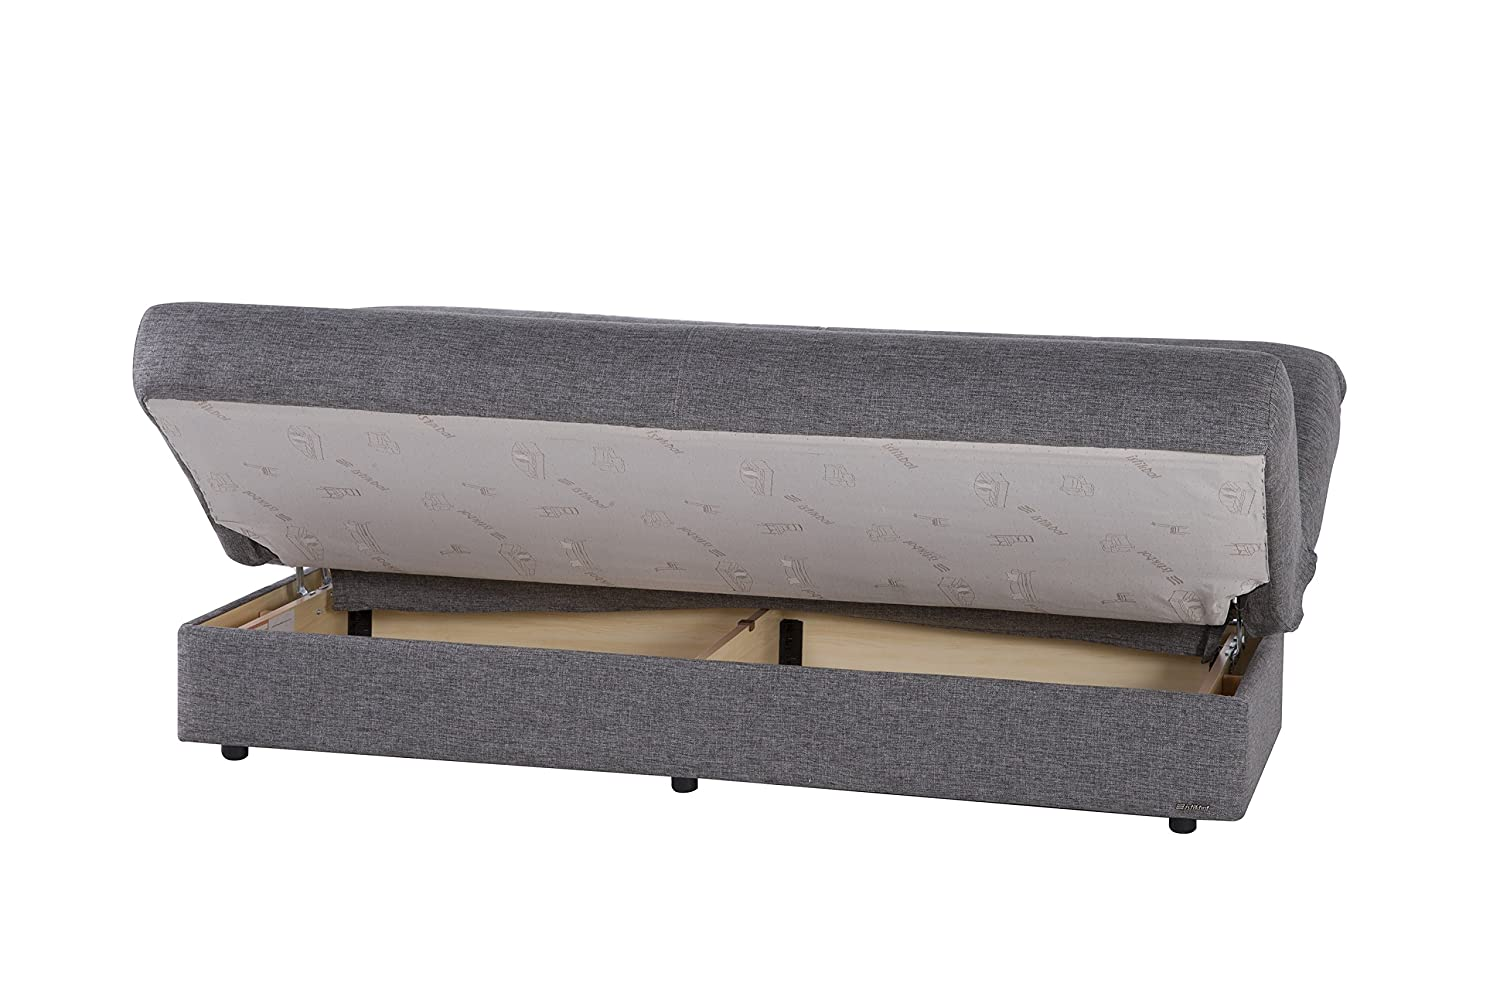 ISTIKBAL Multifunctional Furniture Regata Collection (Sofa Sleeper) DIEGO GRAY